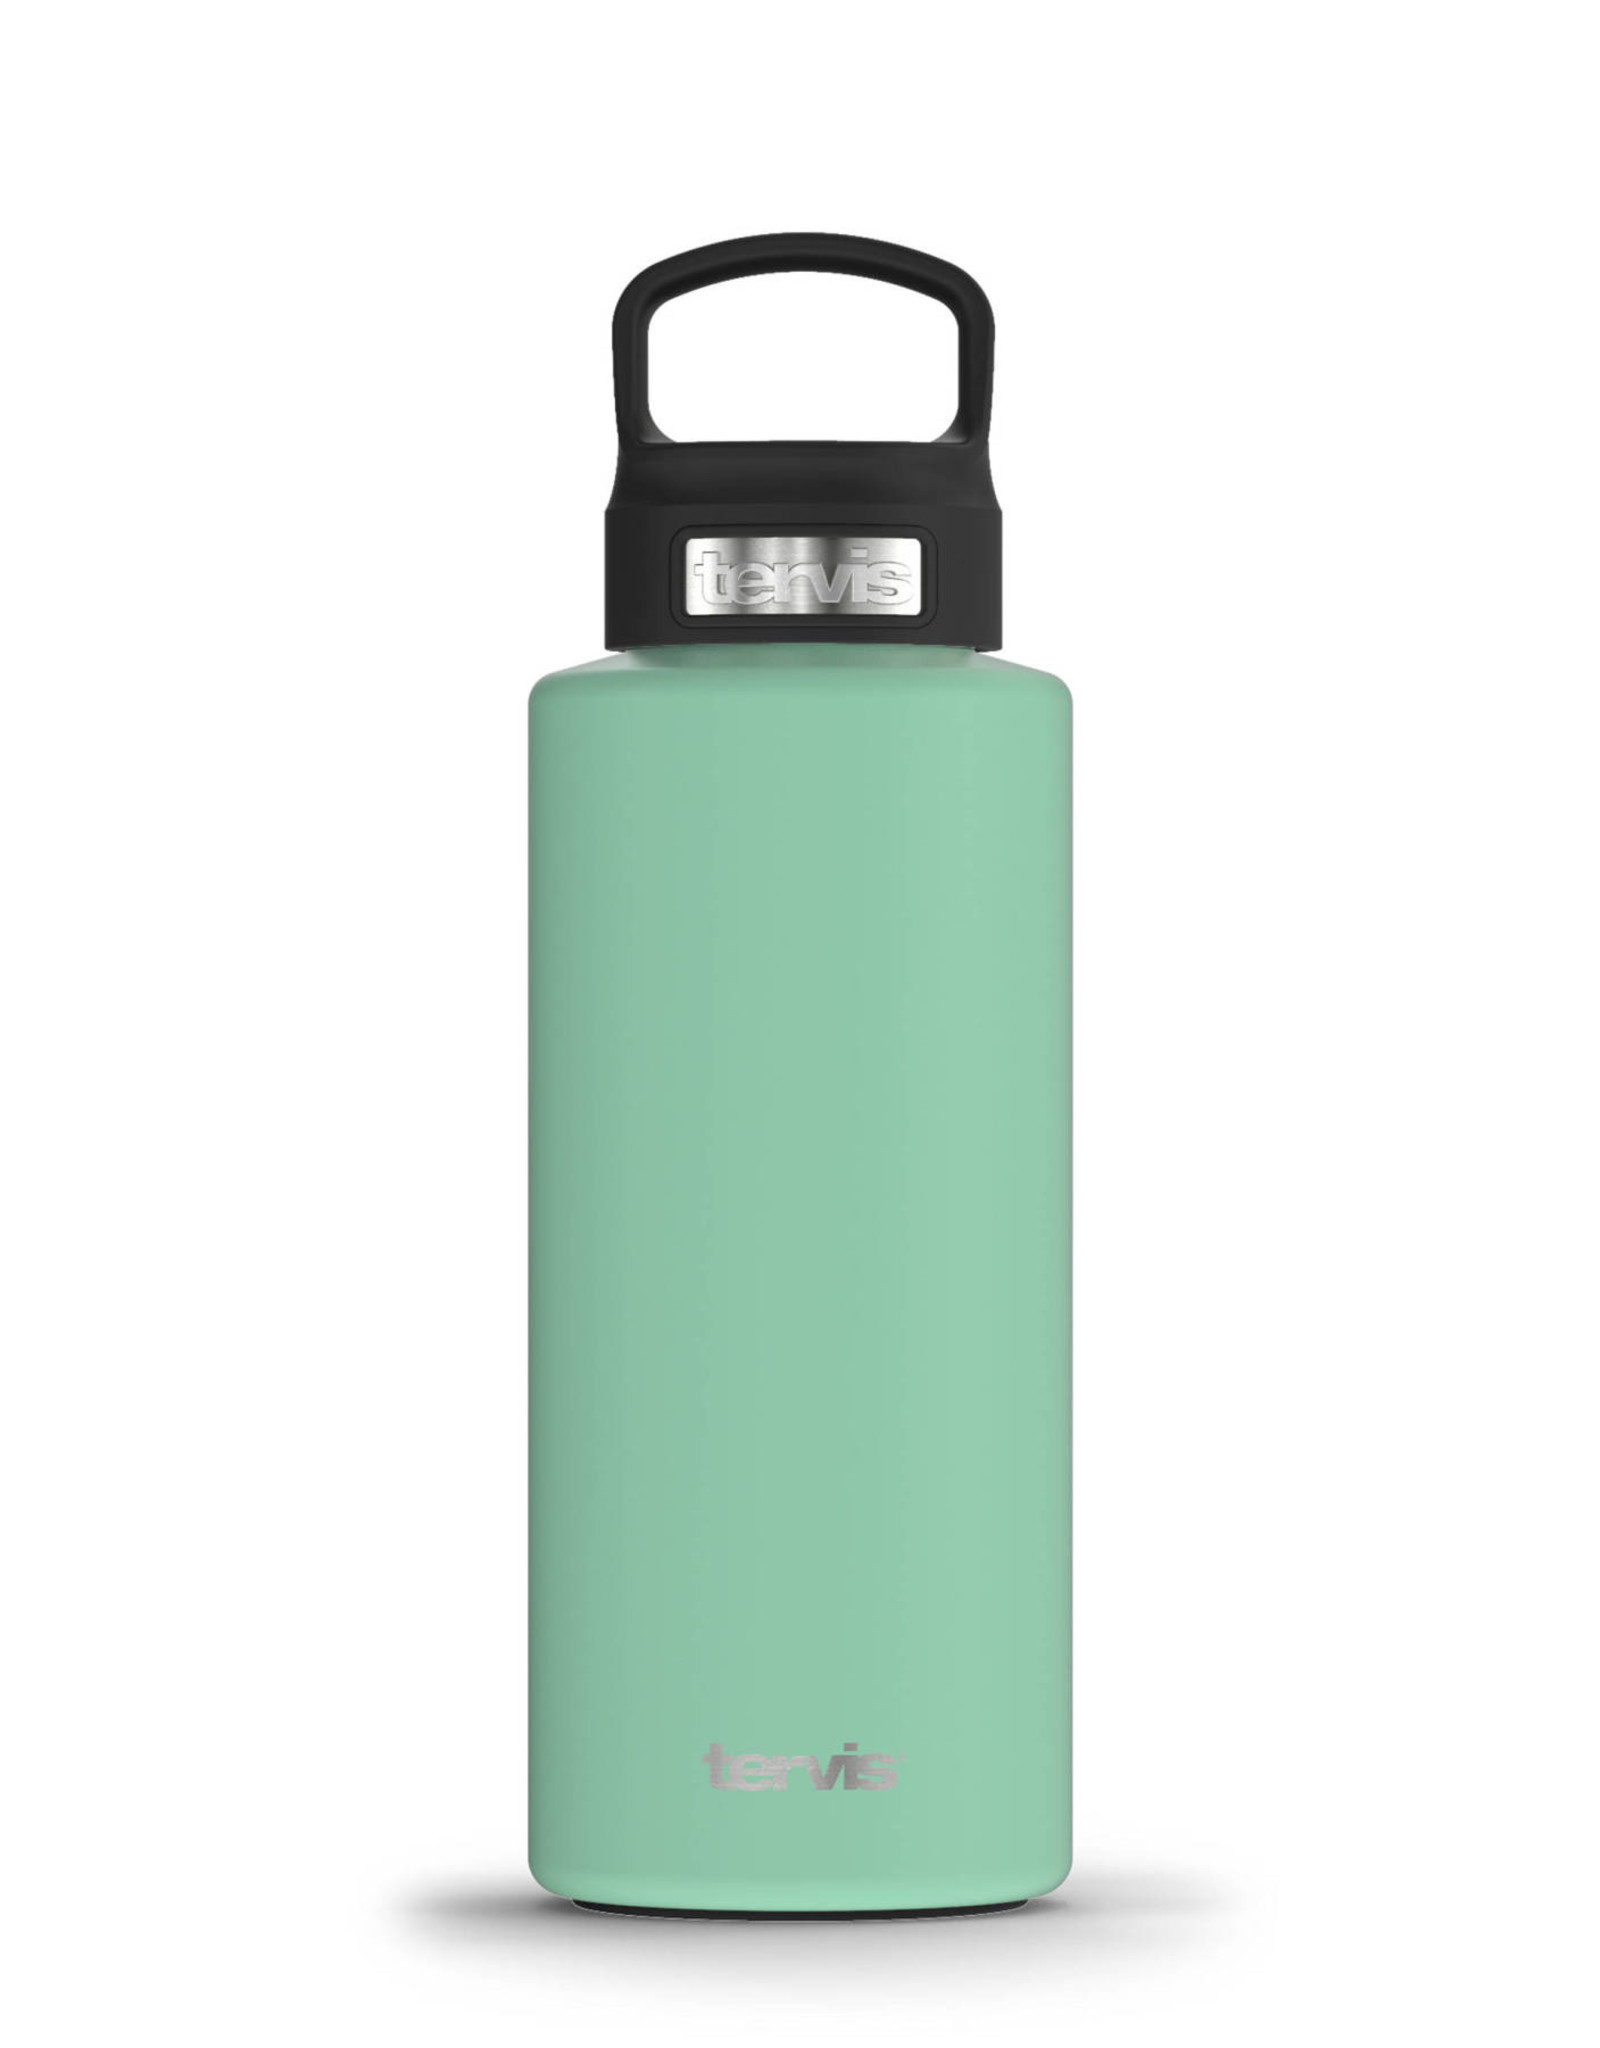 Tervis Tumbler 32oz Mangrove Stainless Powder Coated